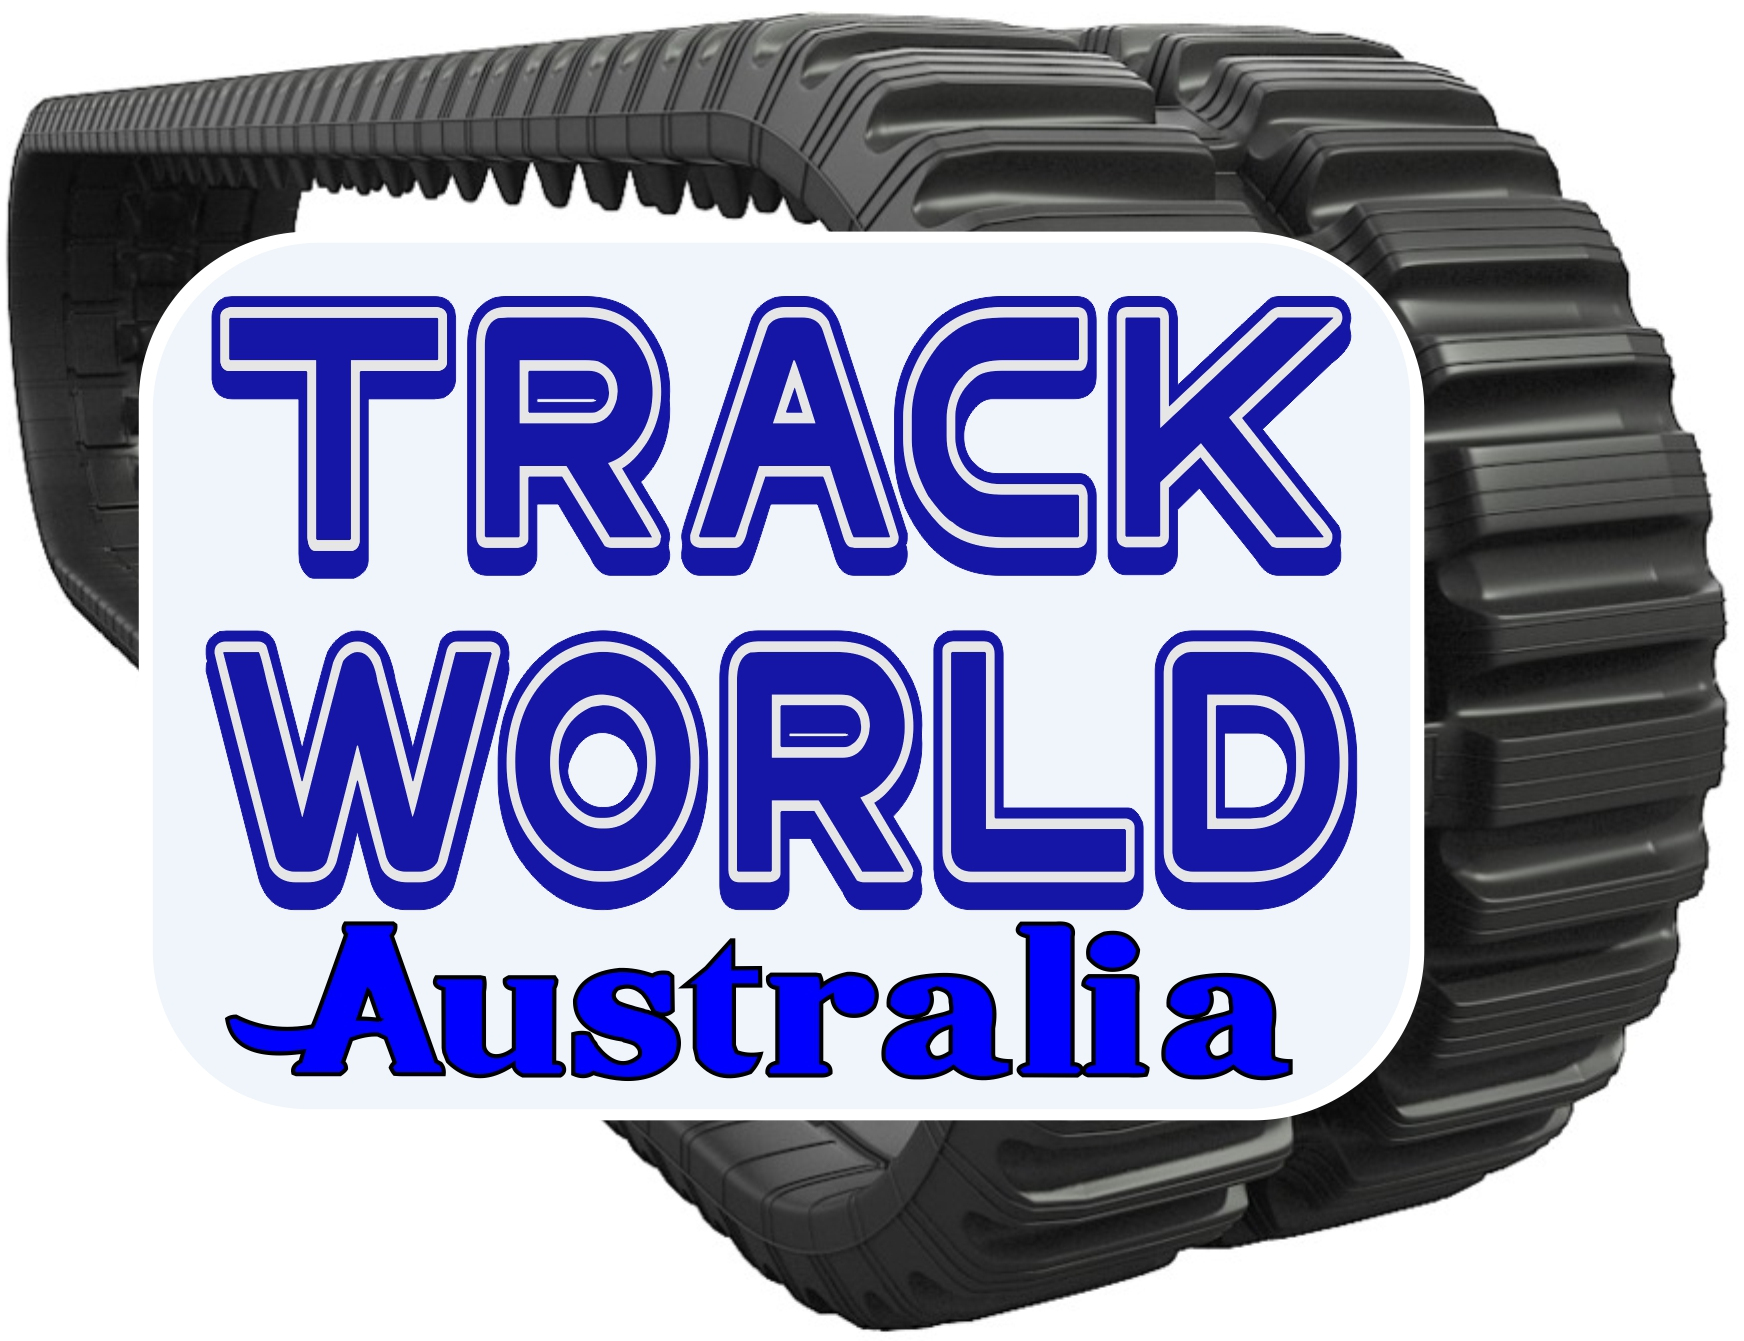 Track World Australia supplies only quality rubber tracks for Ag Tractors, excavators & loaders.